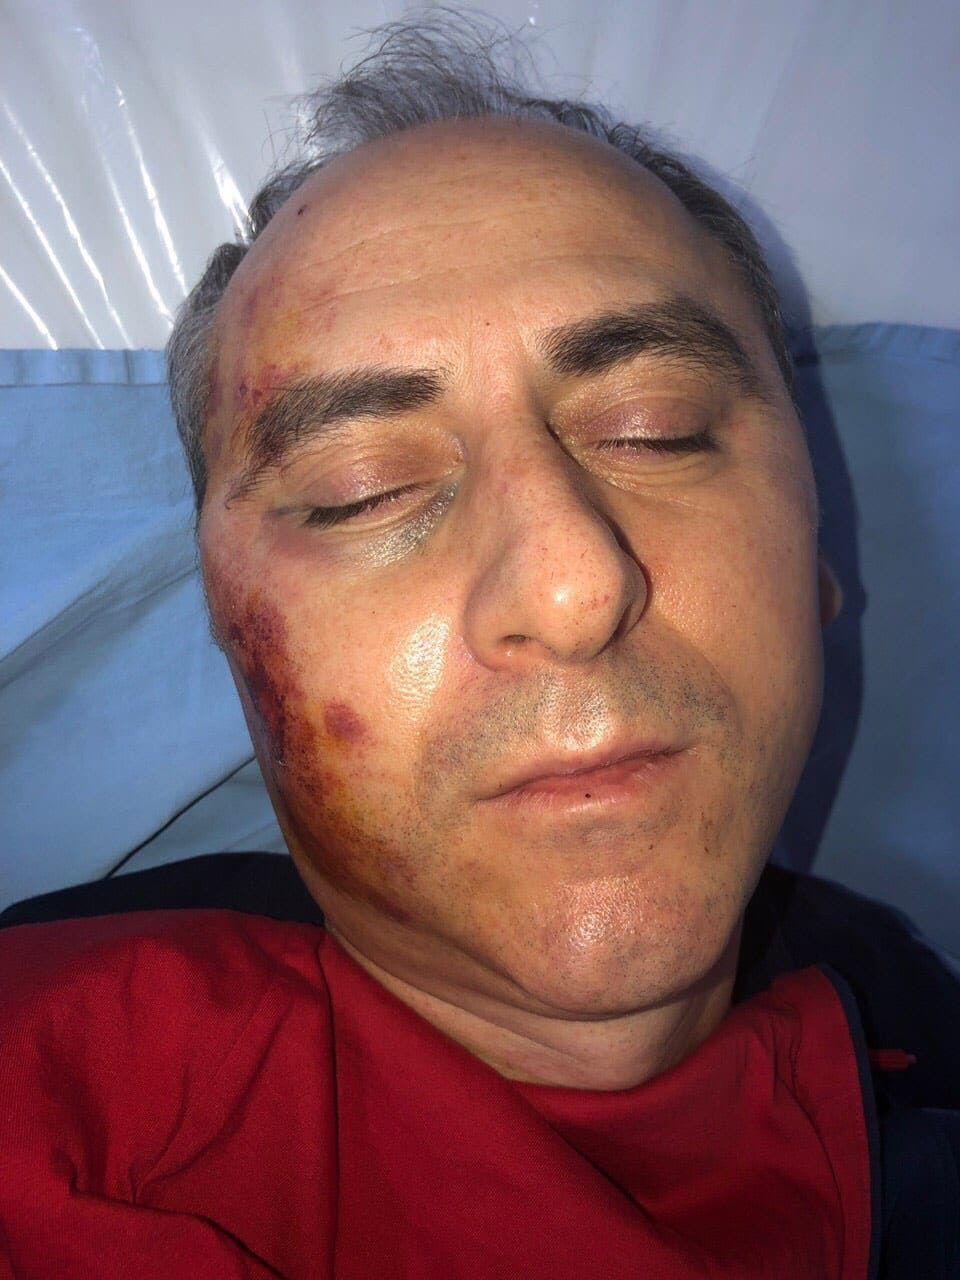 Persecuted former Mayor Toni Trajkovski sustained head injuries after being attacked by a group of thugs